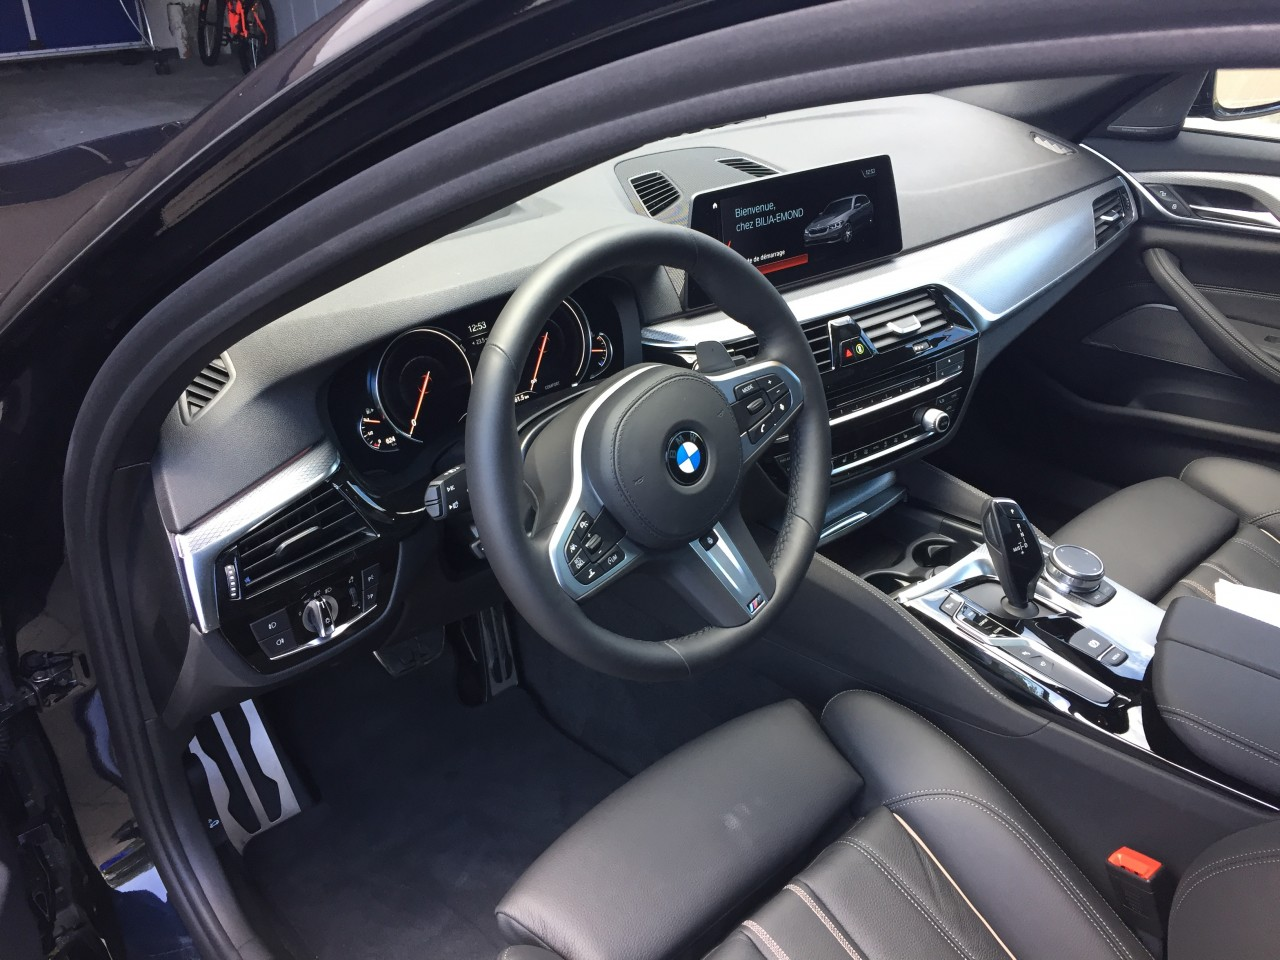 essai 540xi forum ma bmw. Black Bedroom Furniture Sets. Home Design Ideas